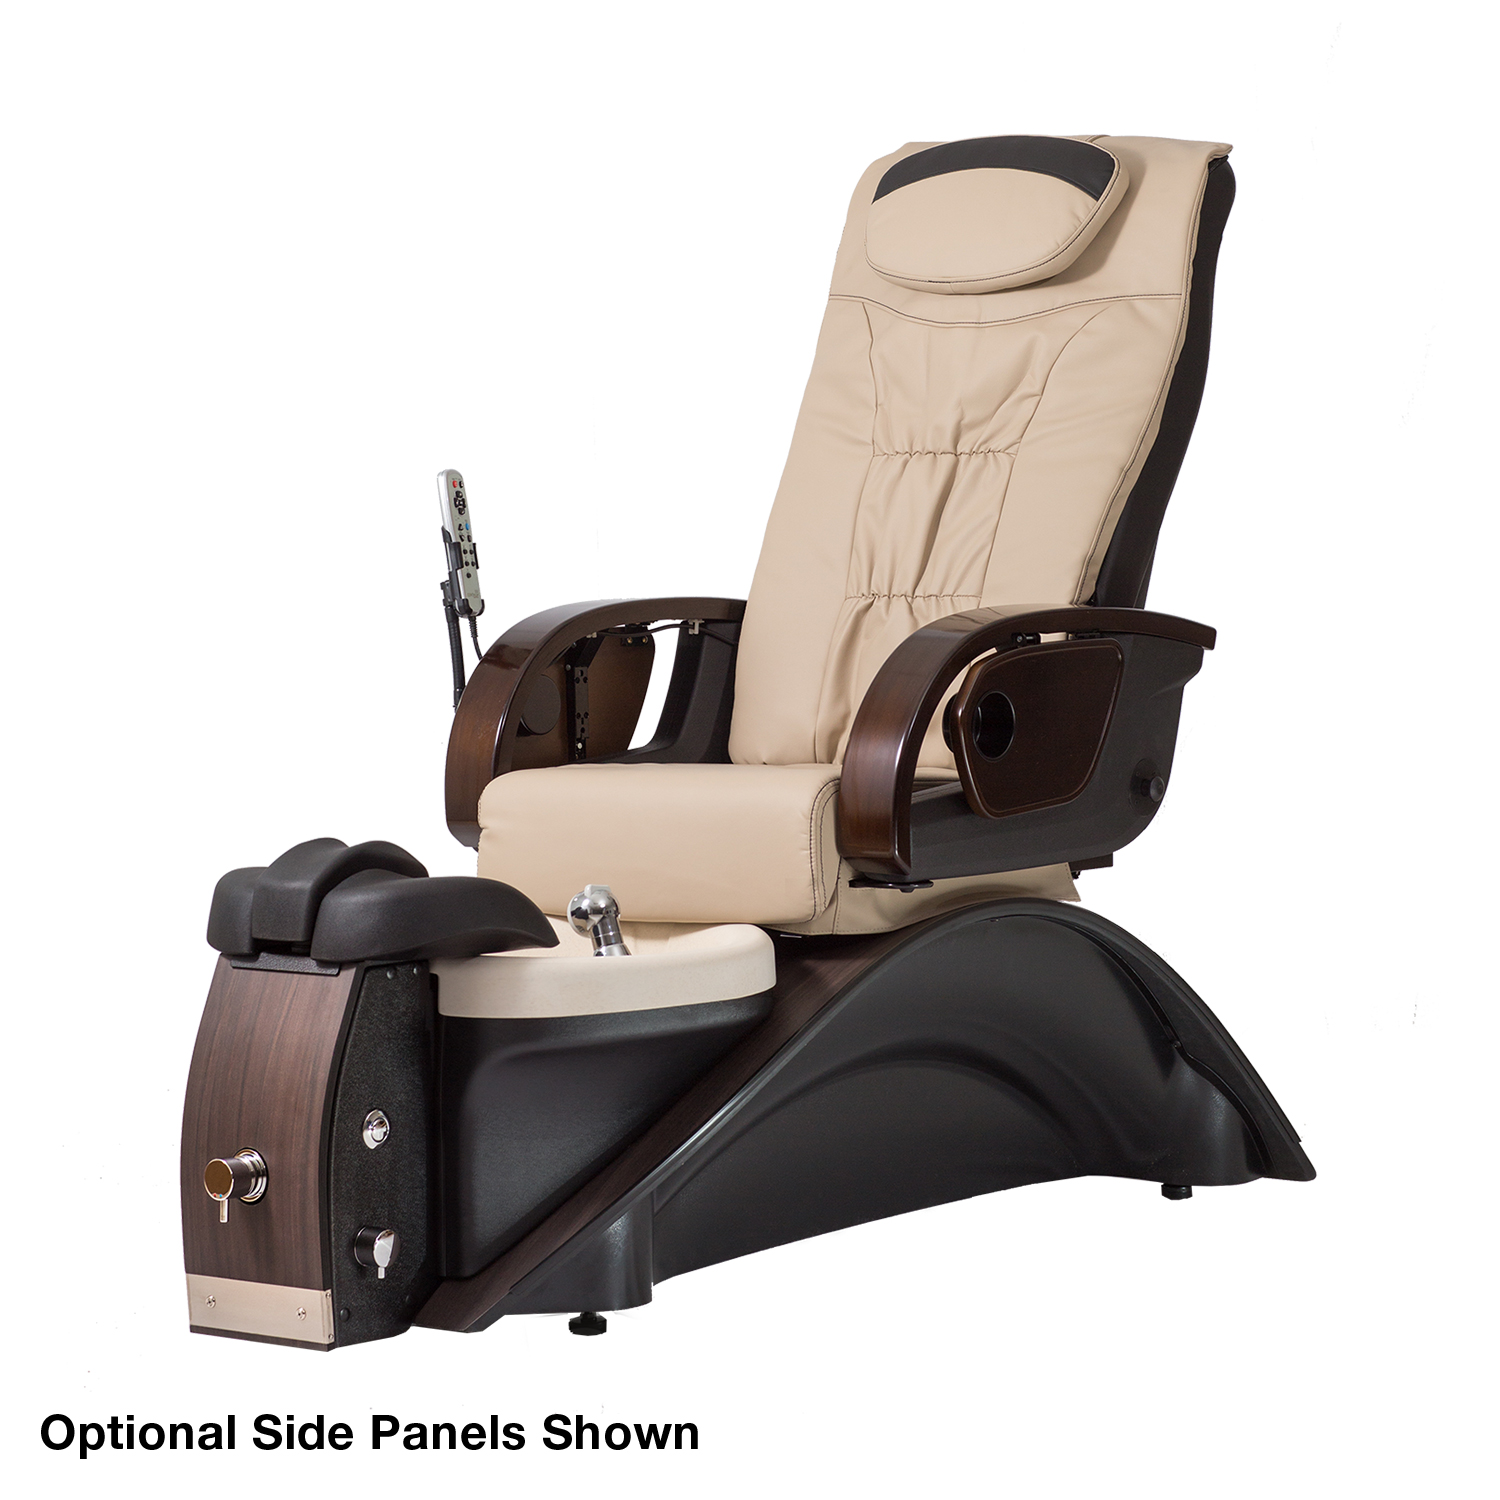 Continuum Footspas Echo Plus LE Pedicure Spa Chair alternative product image 4